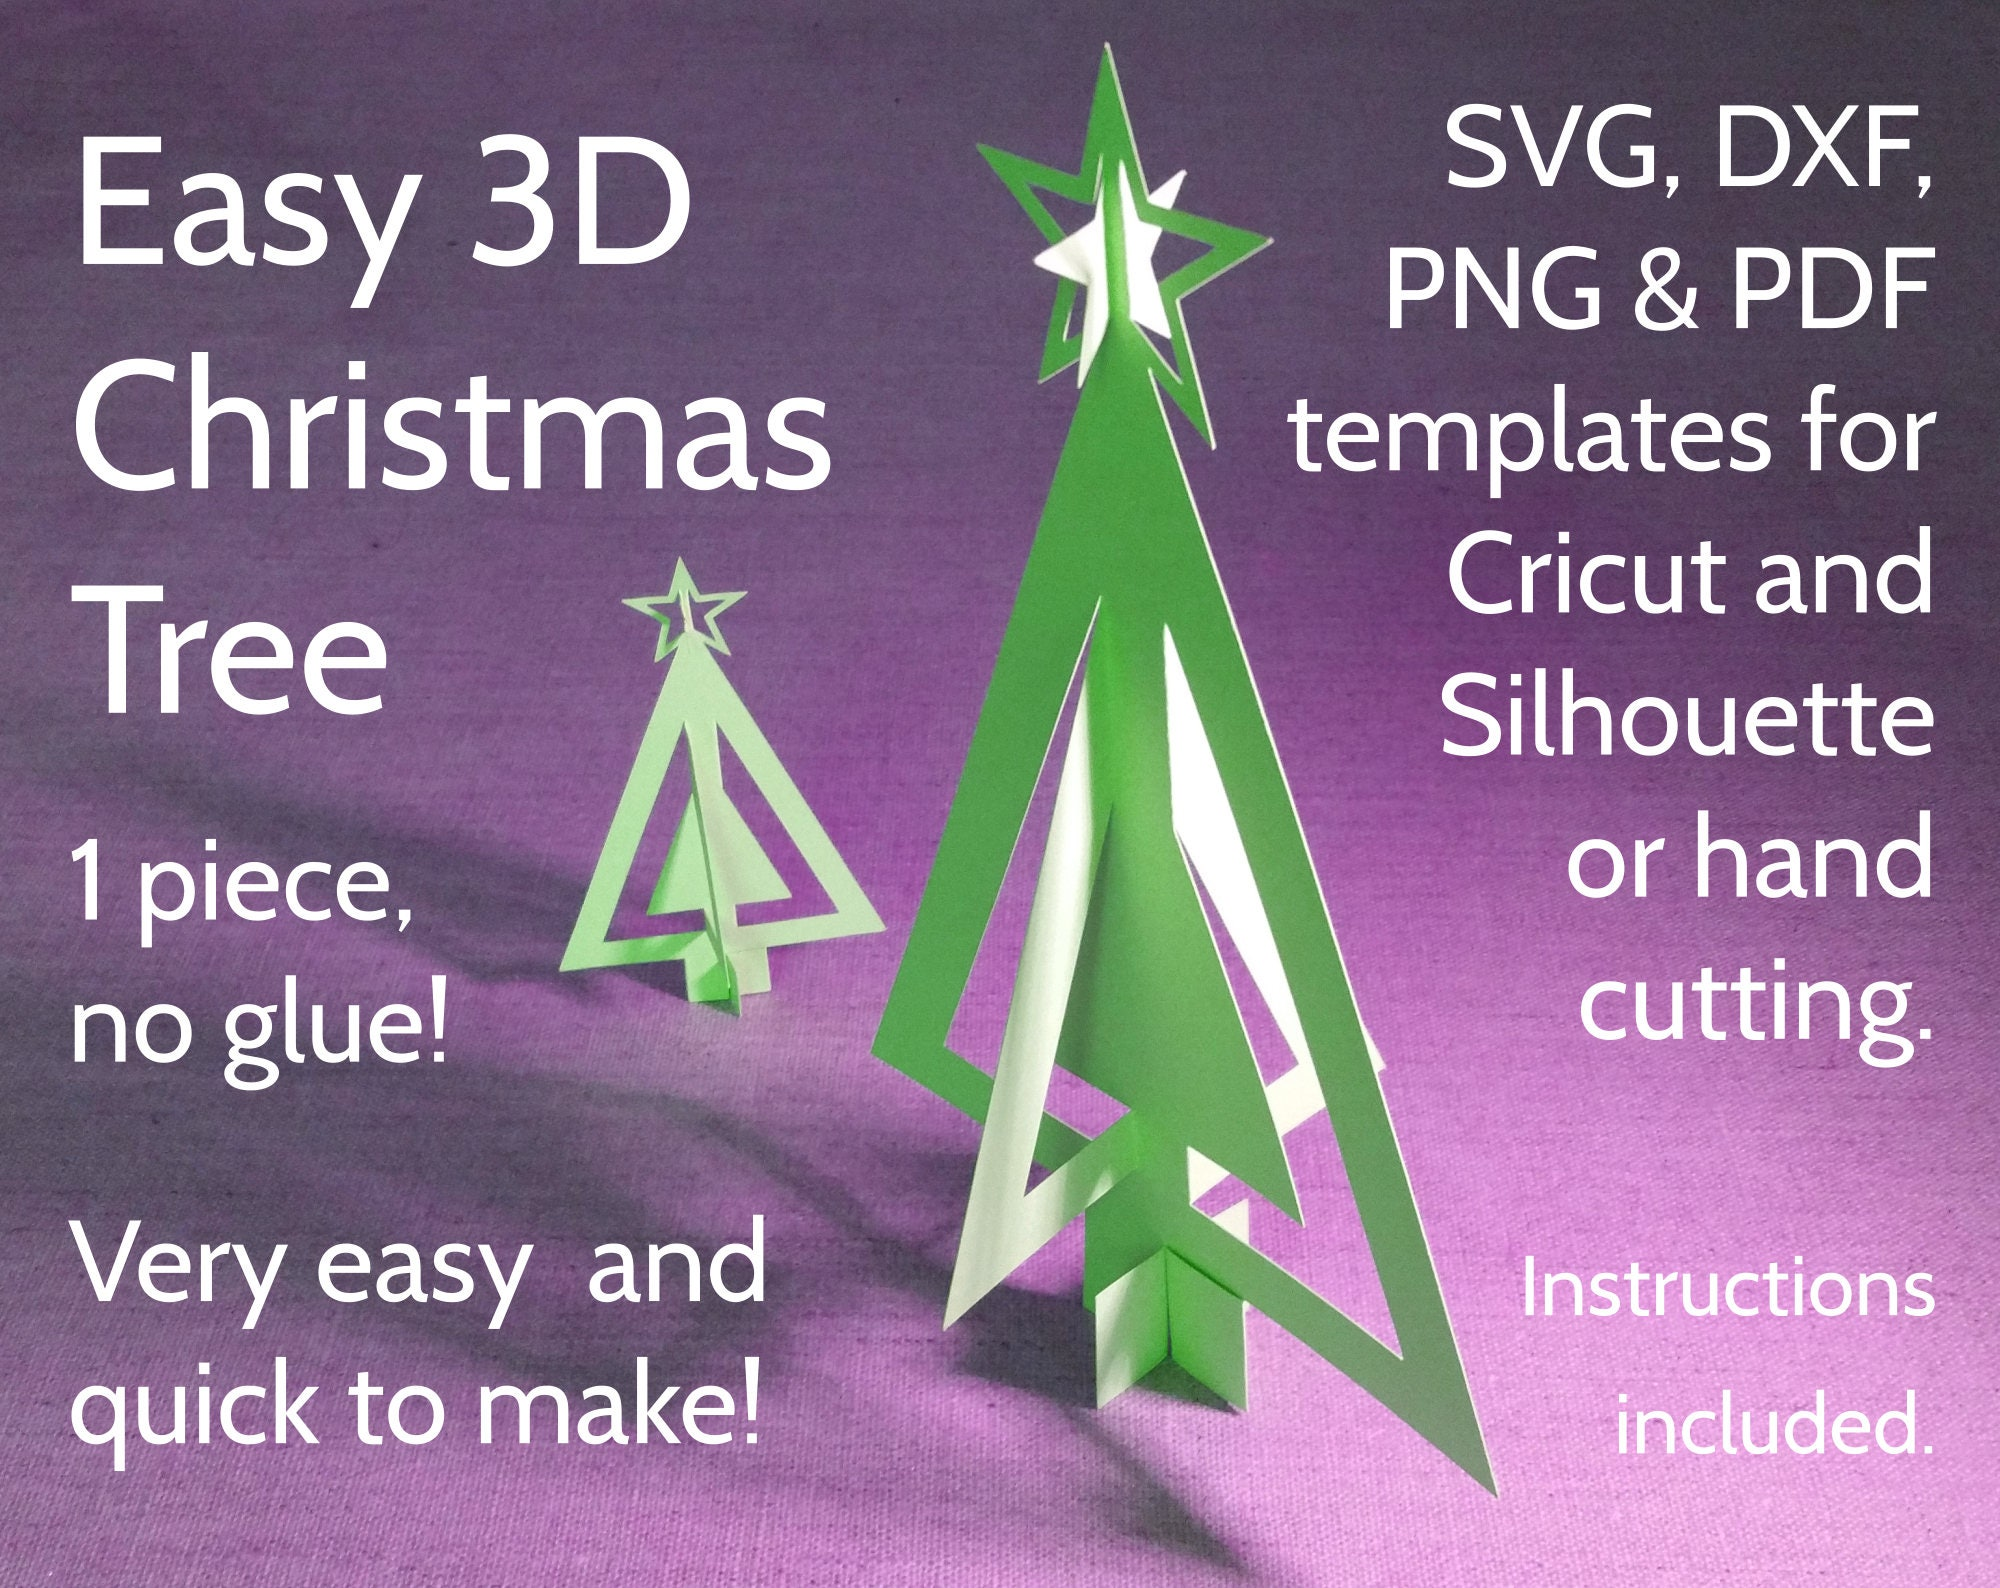 Diy Paper 3d Christmas Tree Template Svg Pdf Dxf Png For Cricut Silhouette And Hand Cutting Original Christmas Paper Craft Design